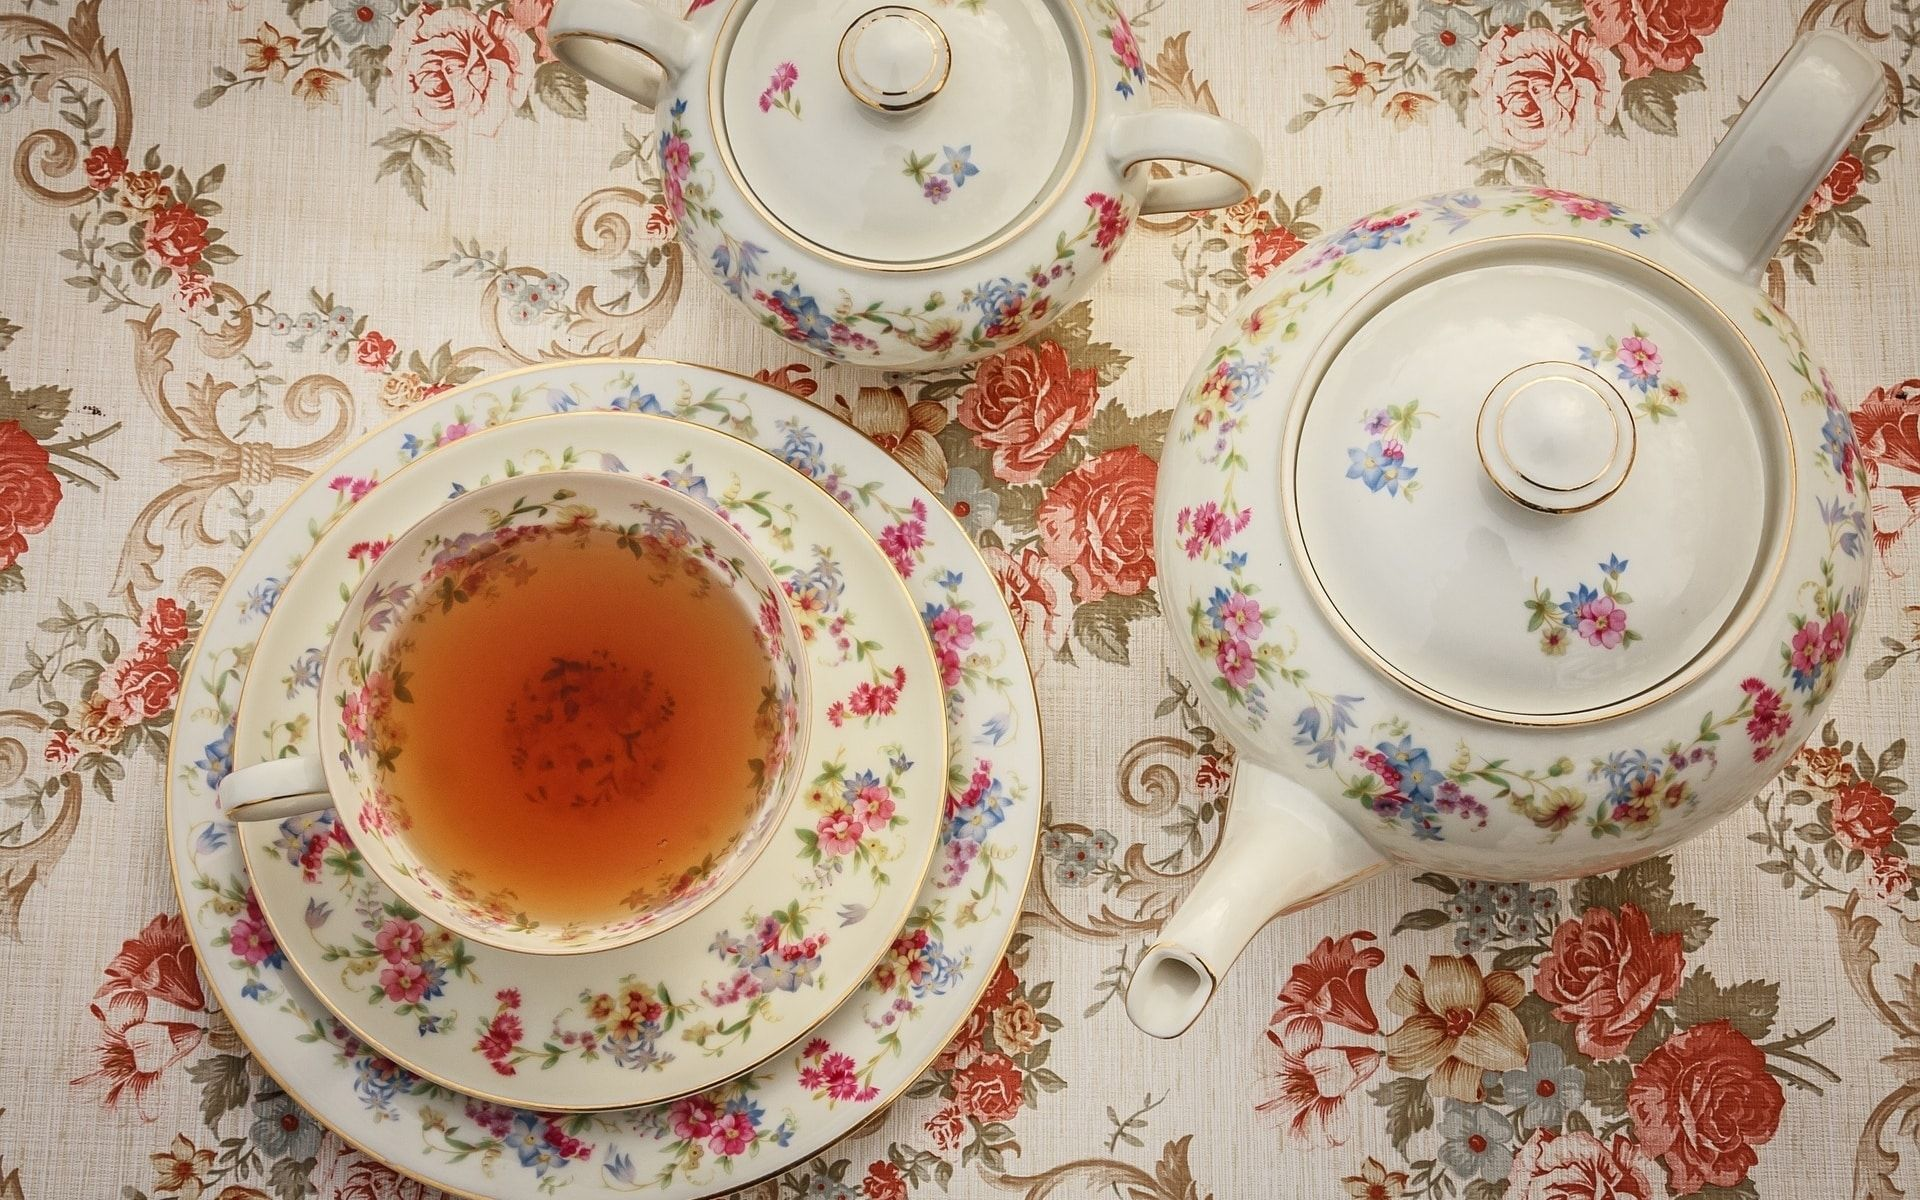 Afternoon Tea Etiquette: How To Properly Enjoy Your Tea & Scones